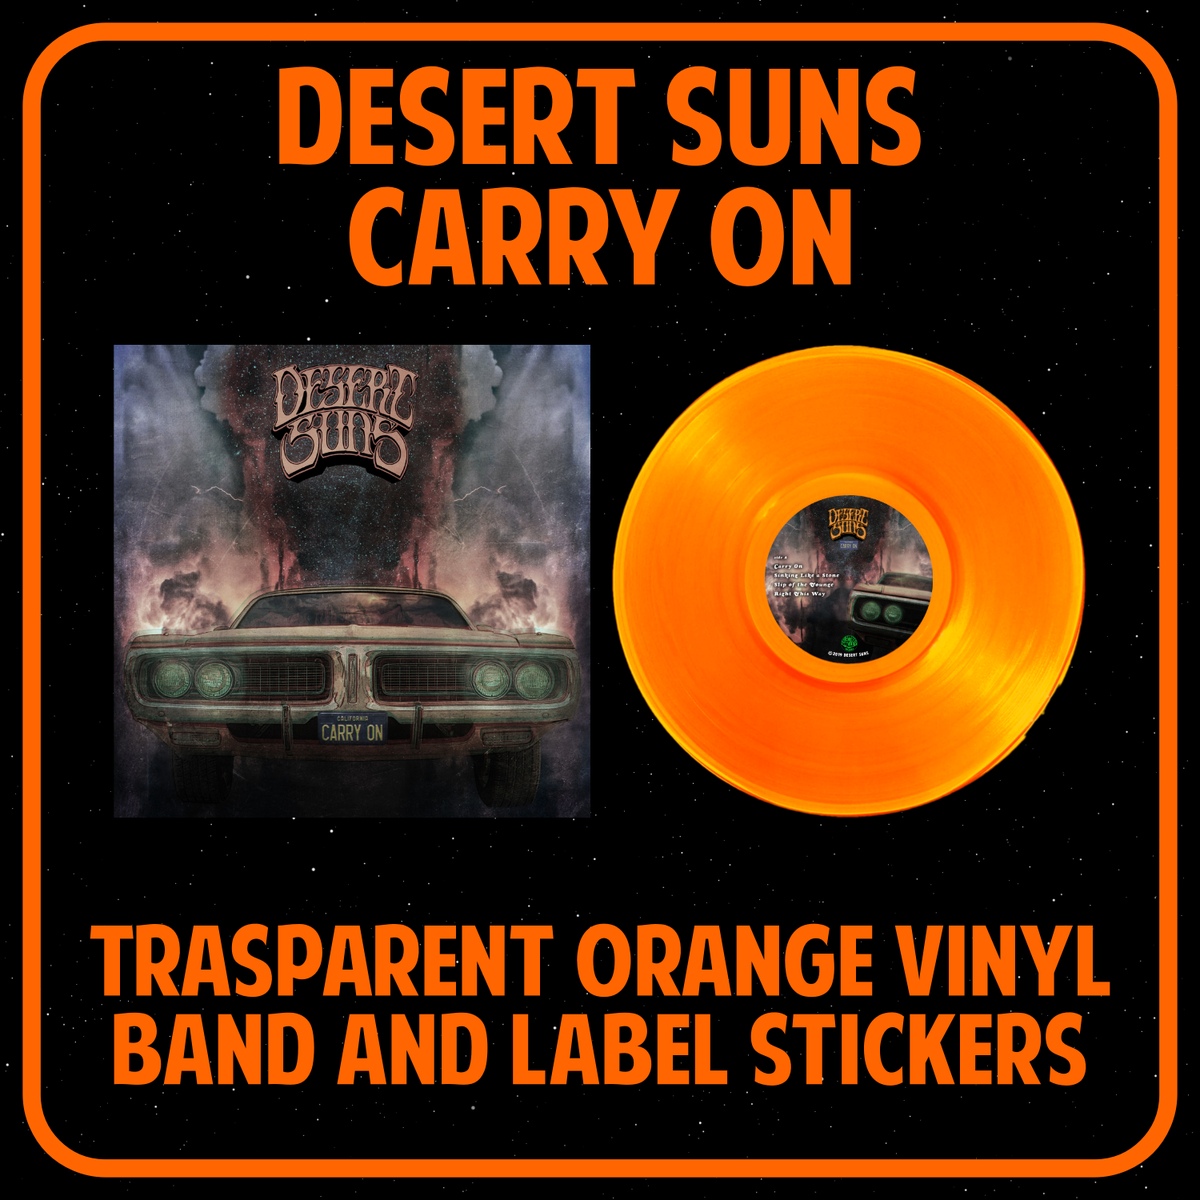 Image of DESERT SUNS - CARRY ON LTD trasparent orange vinyl